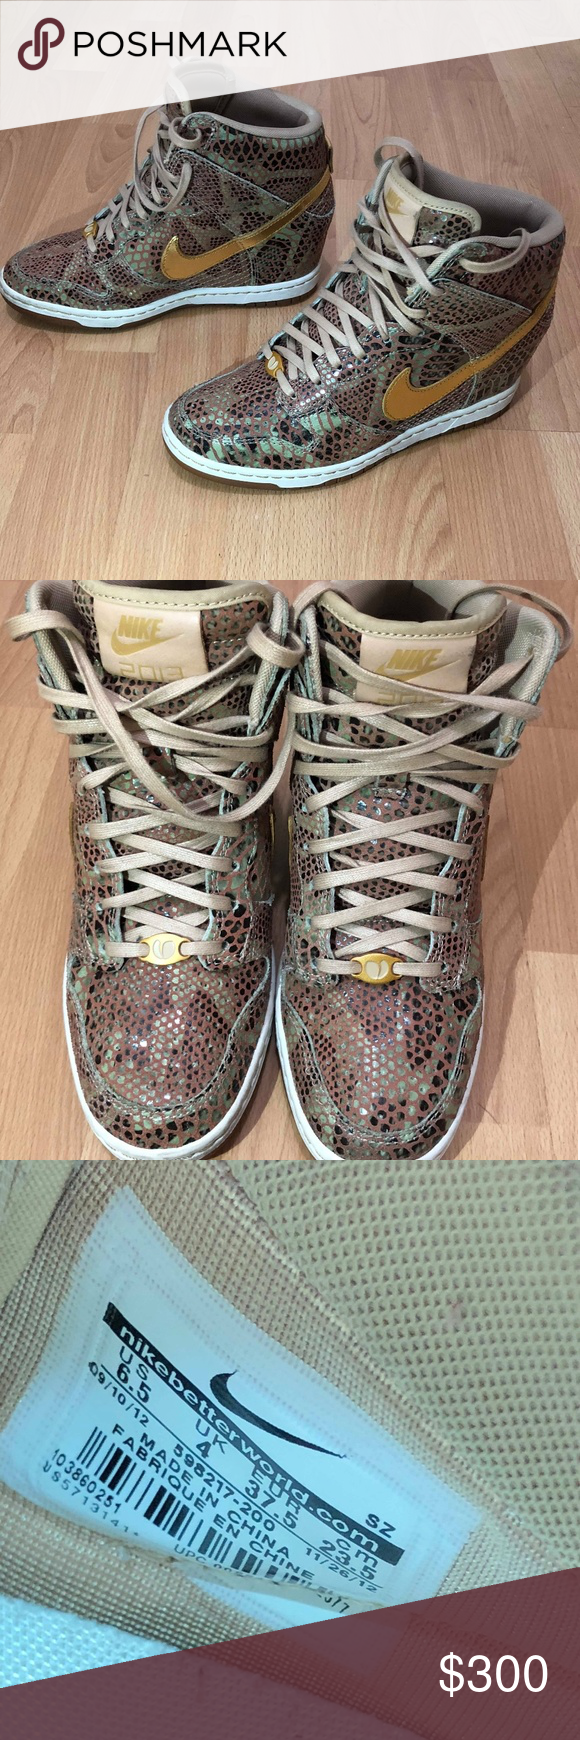 innovative design c8a7c d7dd9 Nike Dunk Sky Hi Wedge Year of the Snake QS Women Nike Dunk Sky Hi Wedge  Year of the Snake QS Women size 6.5 shoes 598217-200 ITEM FEATURES!